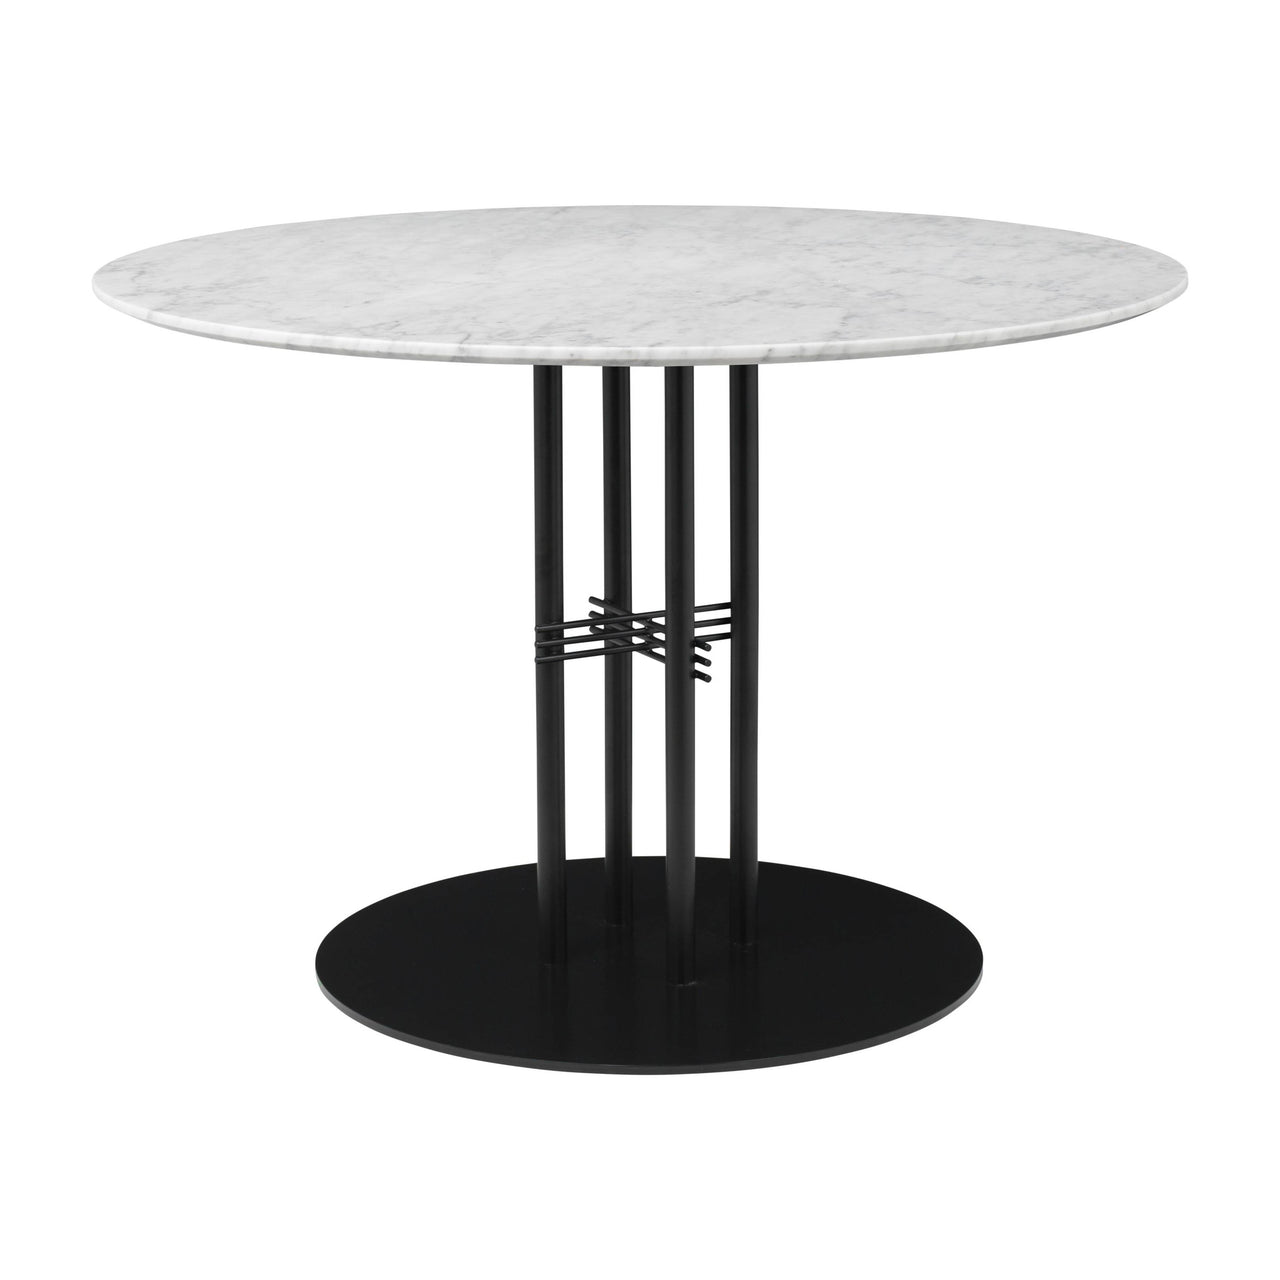 TS Column Dining Table: Medium + Black Base + White Carrara Marble